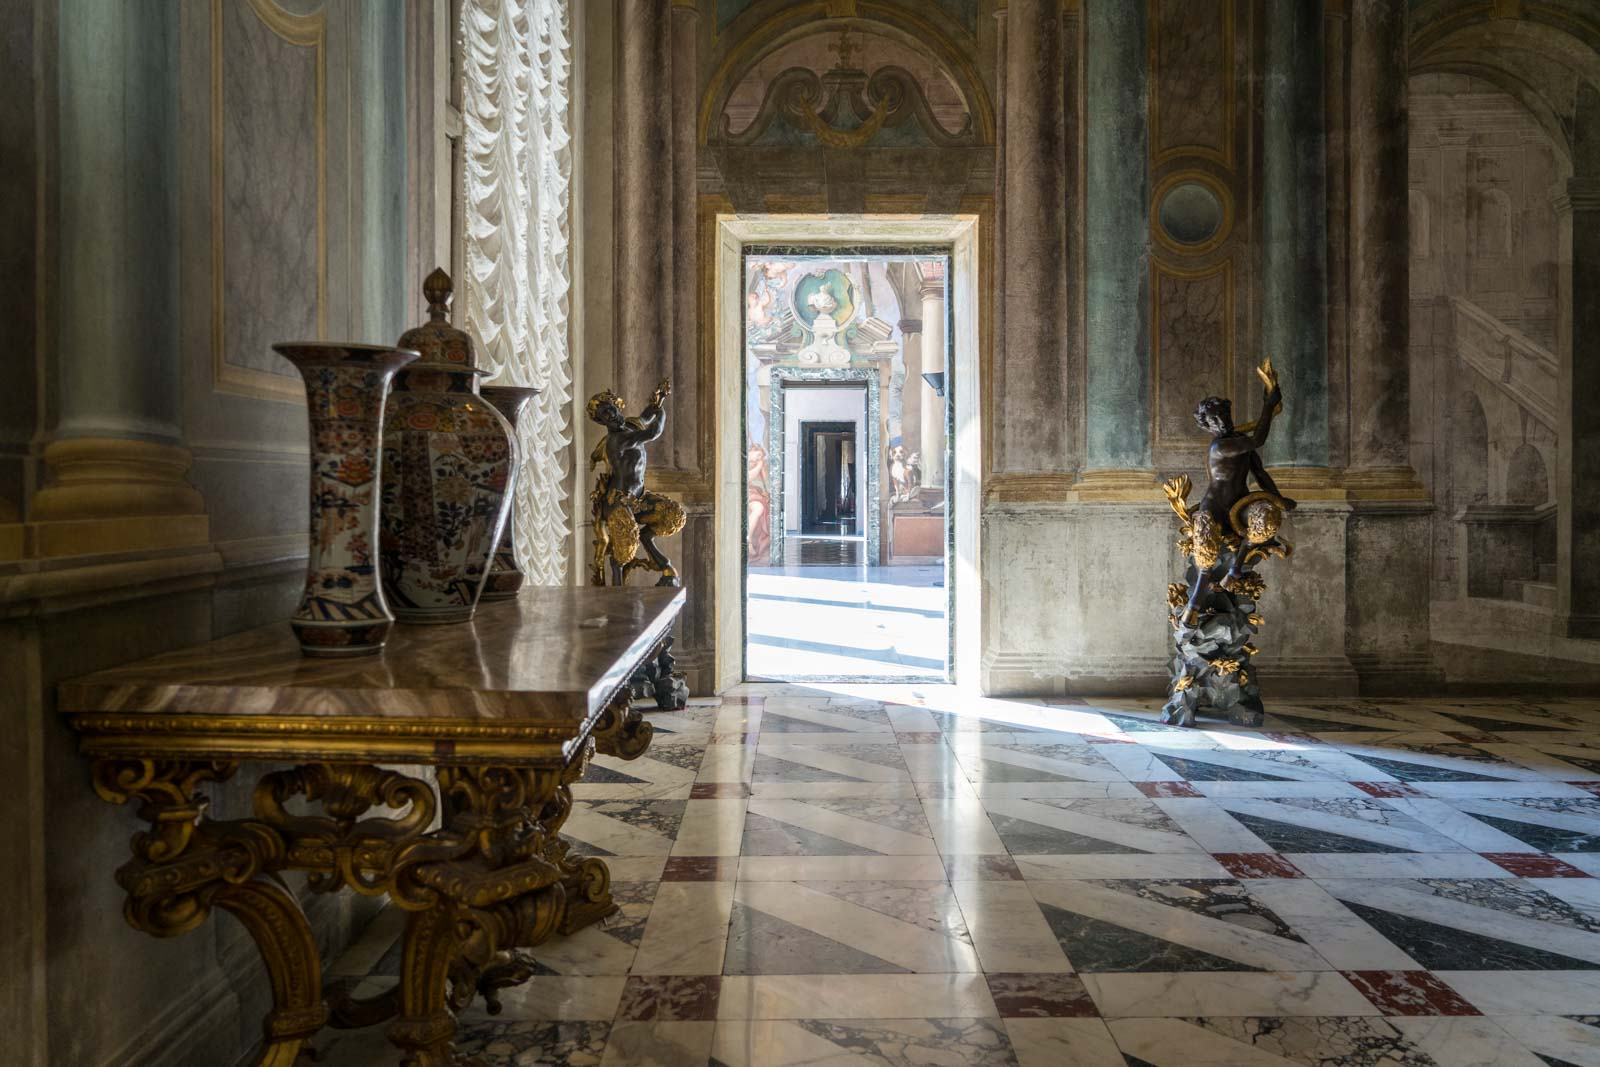 Italy 2017 1153 new – Palazzo Reale, Rosso - Italian Luxury Palaces: Breathing Cultural City Wonders